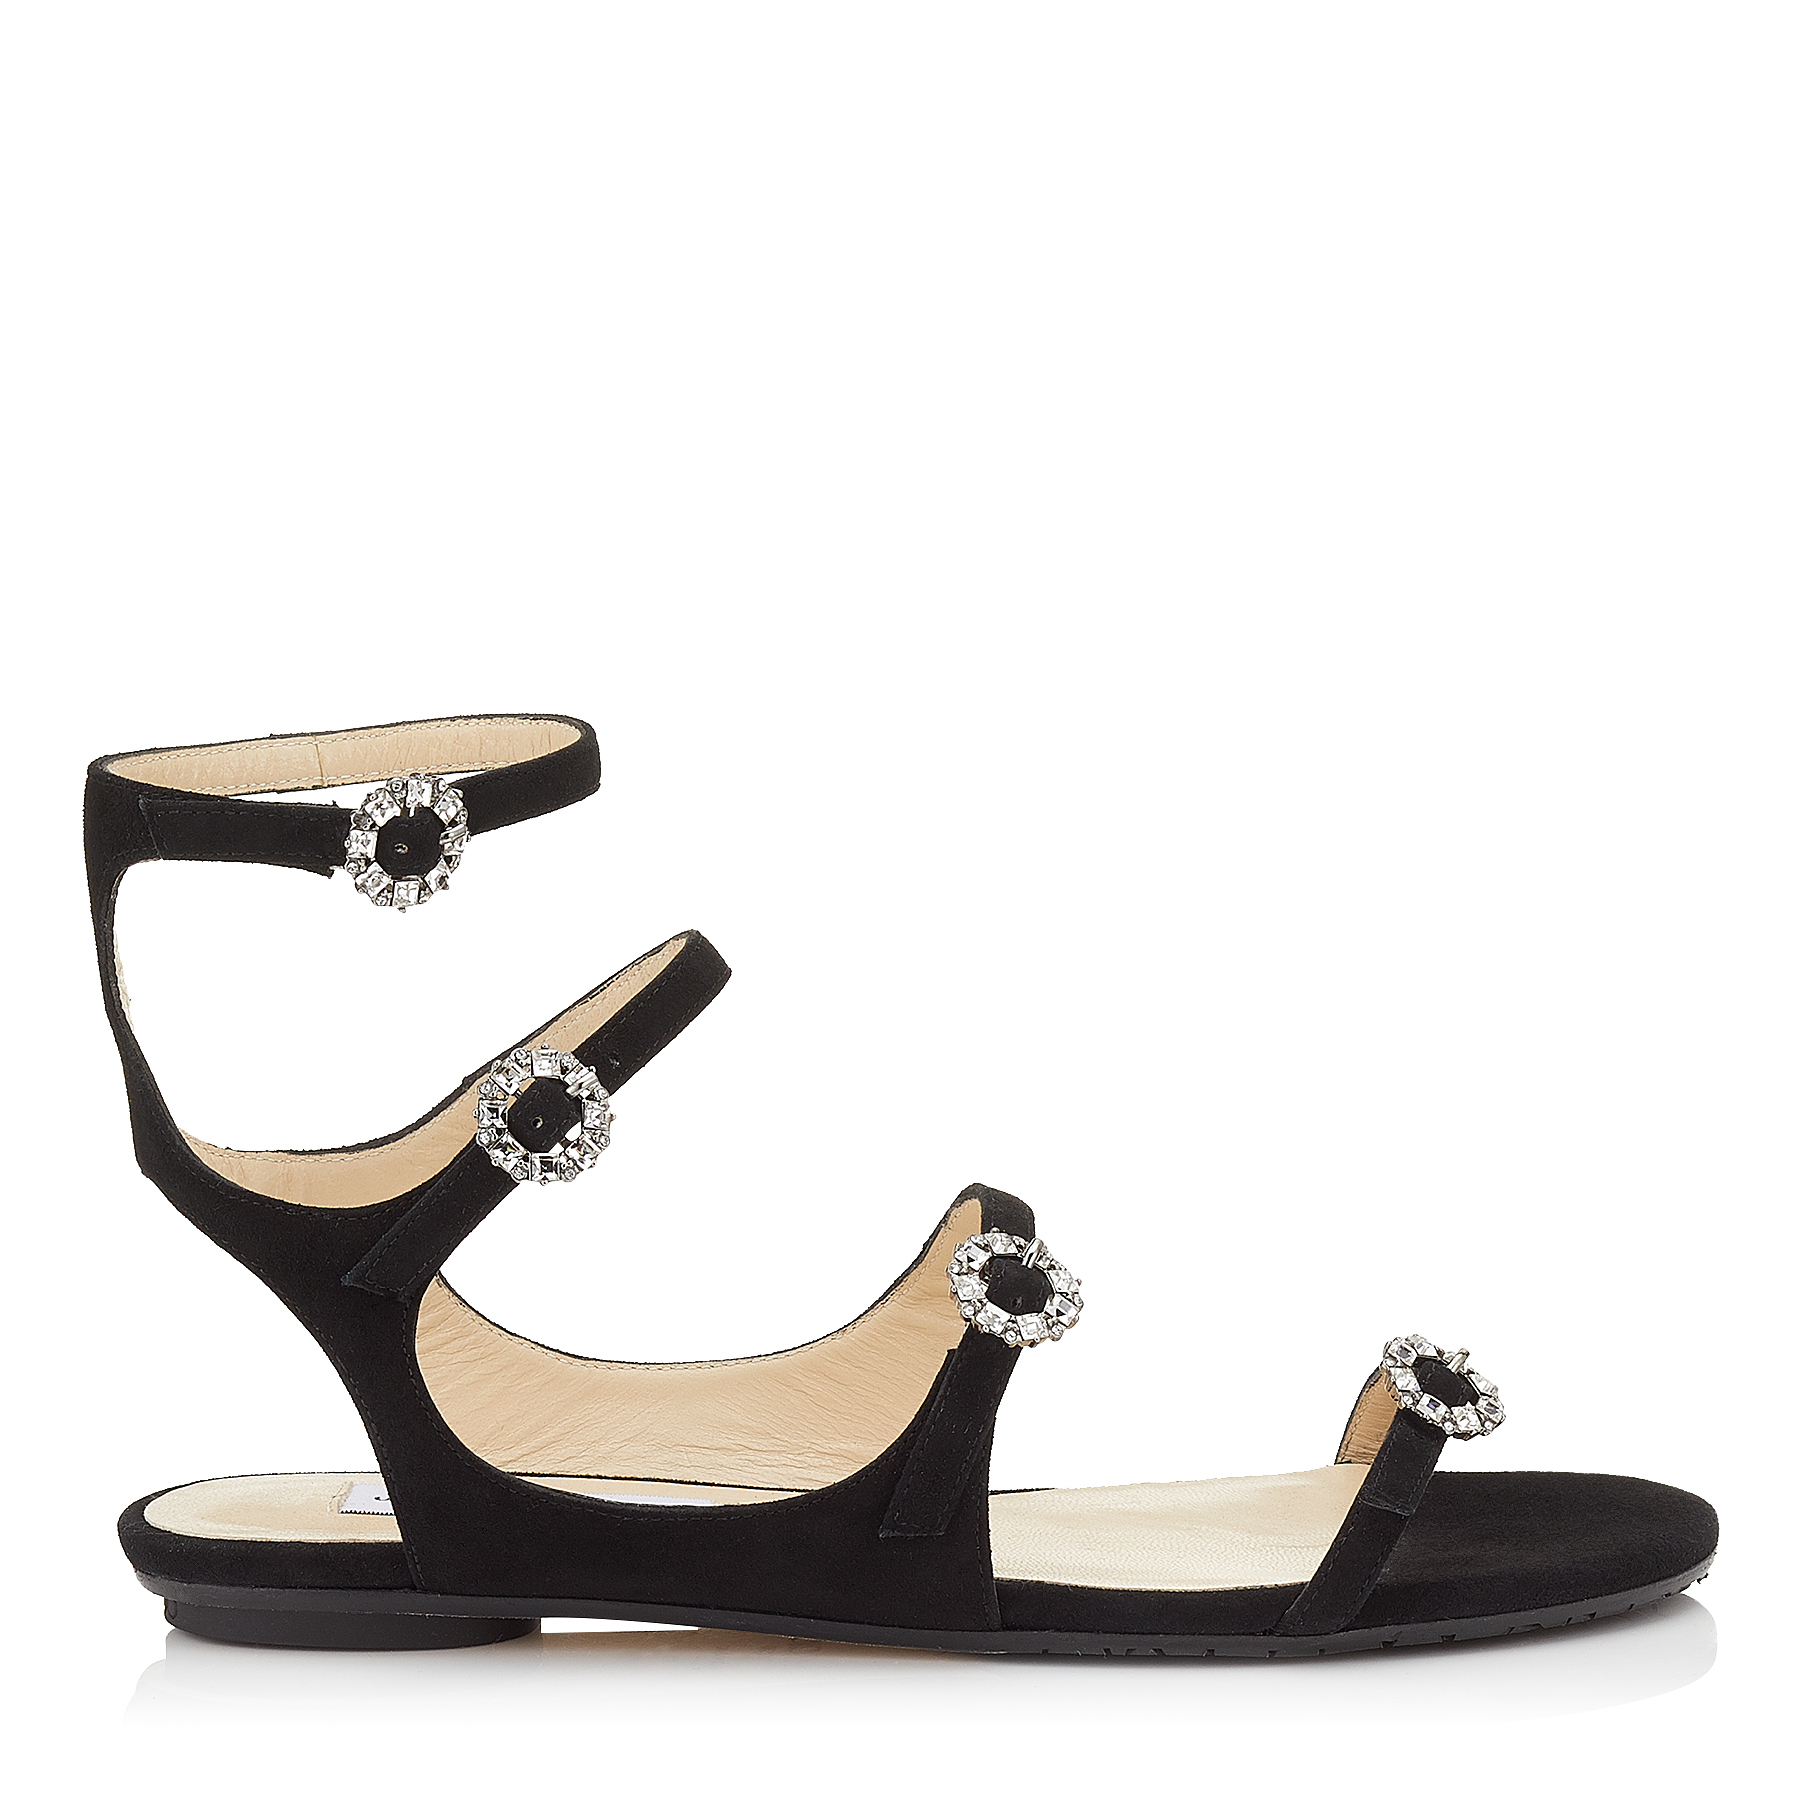 NAIA FLAT Black Suede Sandals with Swarovski Crystal Buckles by Jimmy Choo